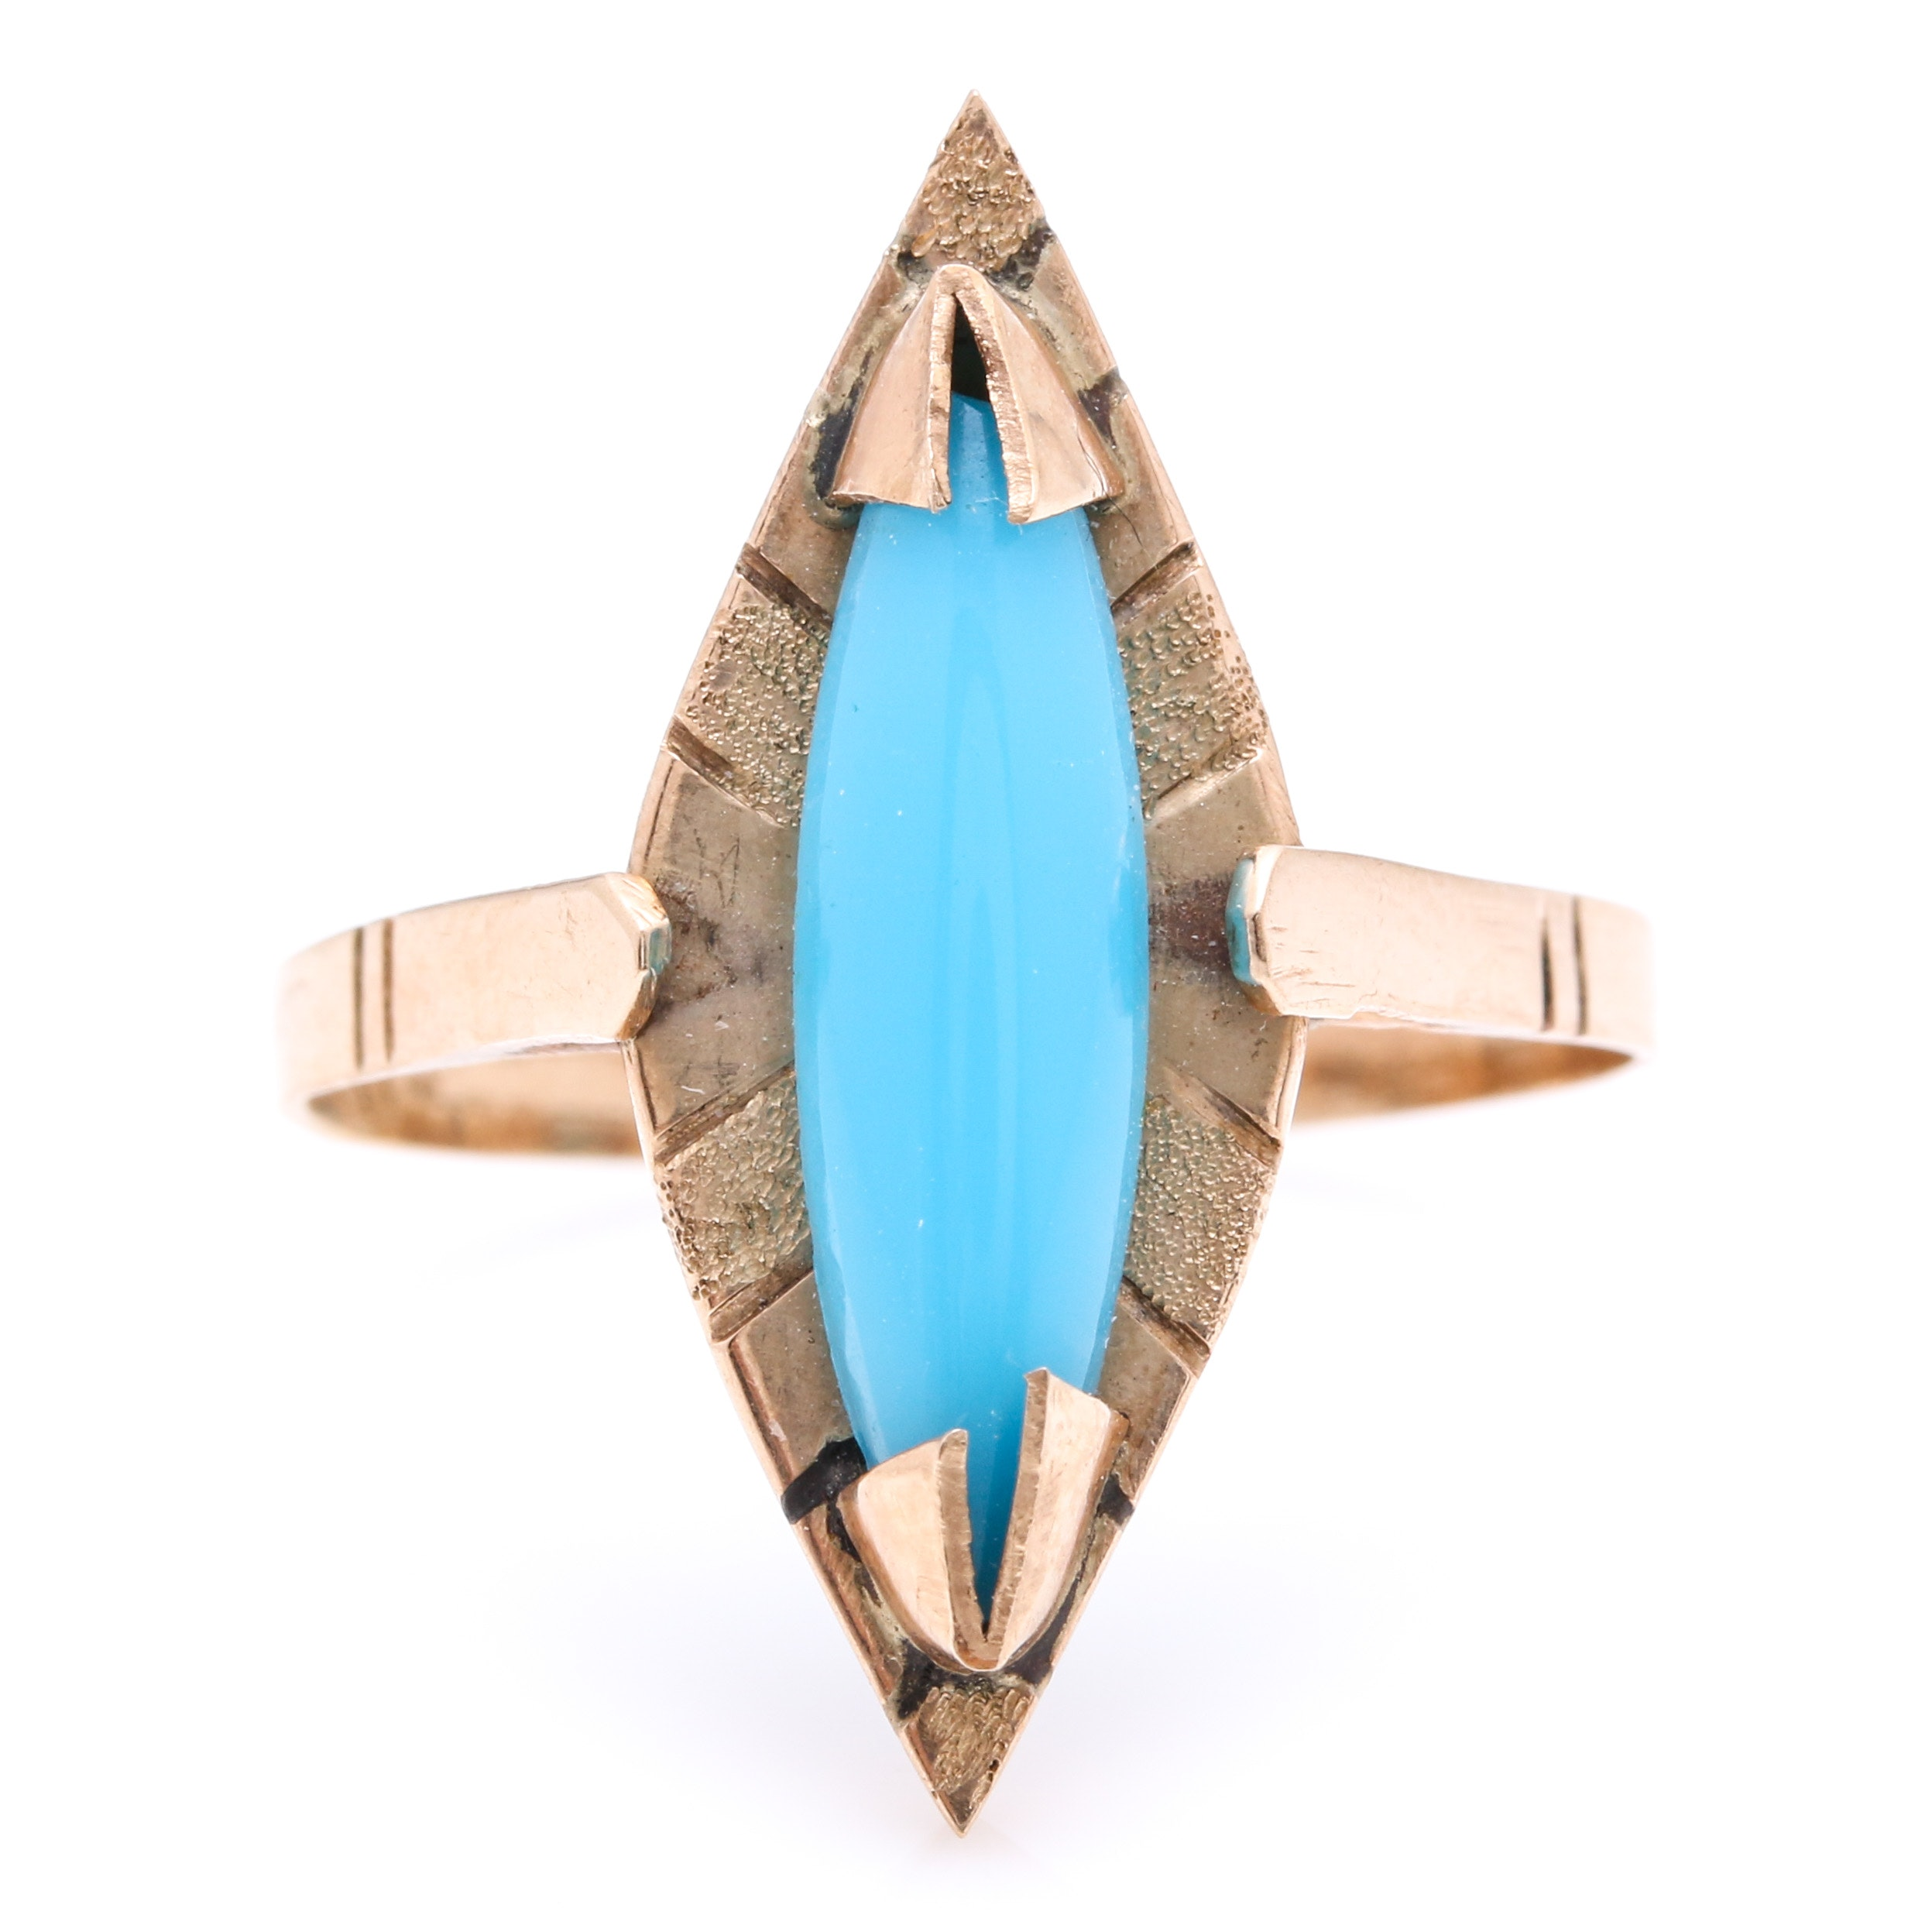 14K Yellow Gold Chrysocolla-in-Chalcedony Ring